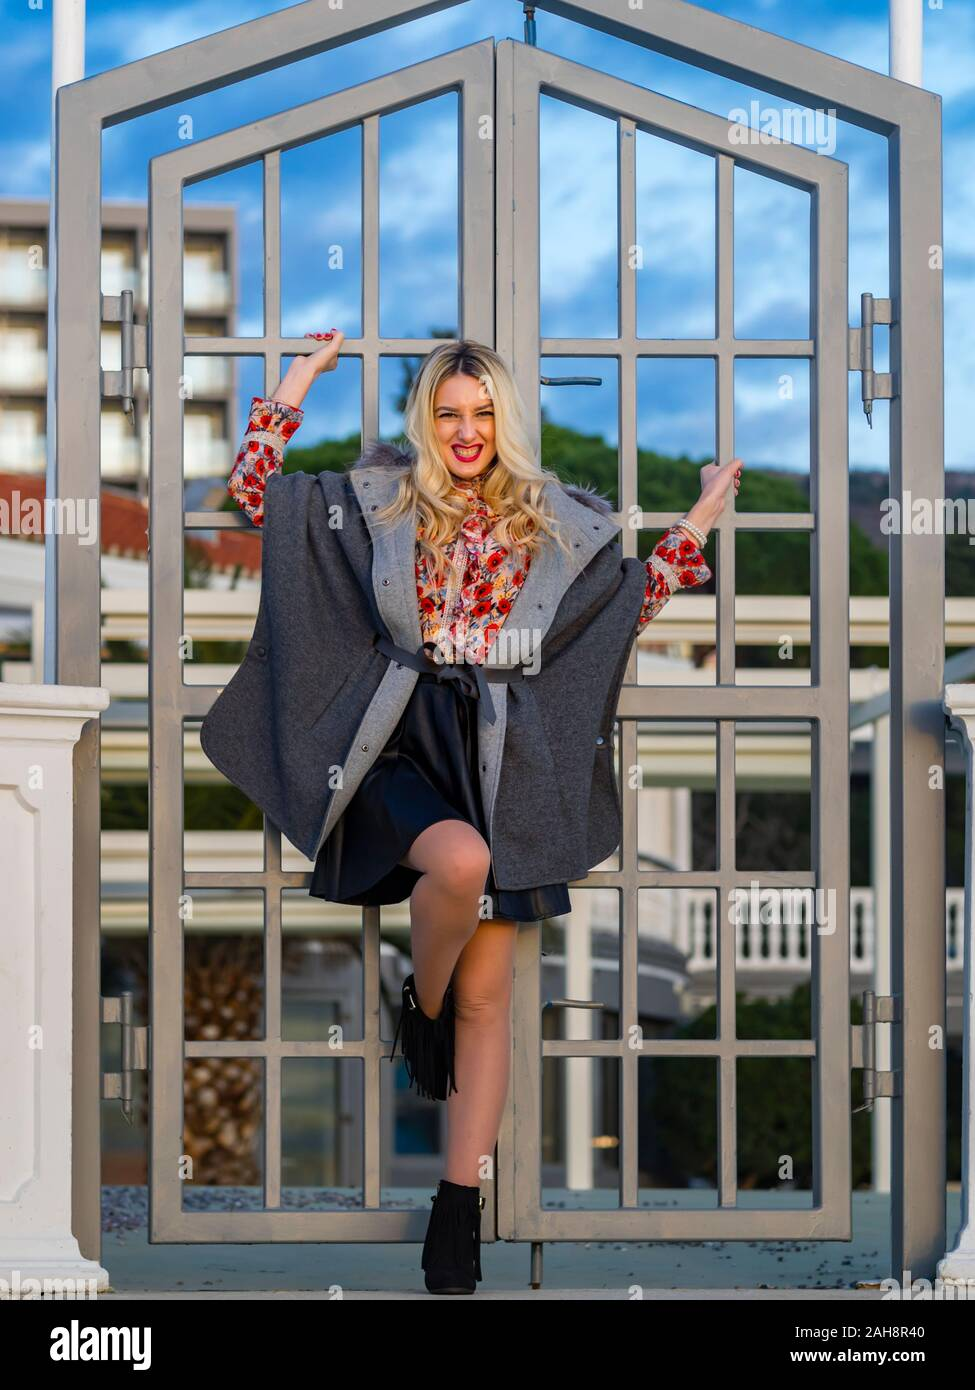 Fanciful blonde young lady spreading on metal fence door entrance looking at camera eyeshot eyes eye-contact forsed chuckle smile Stock Photo